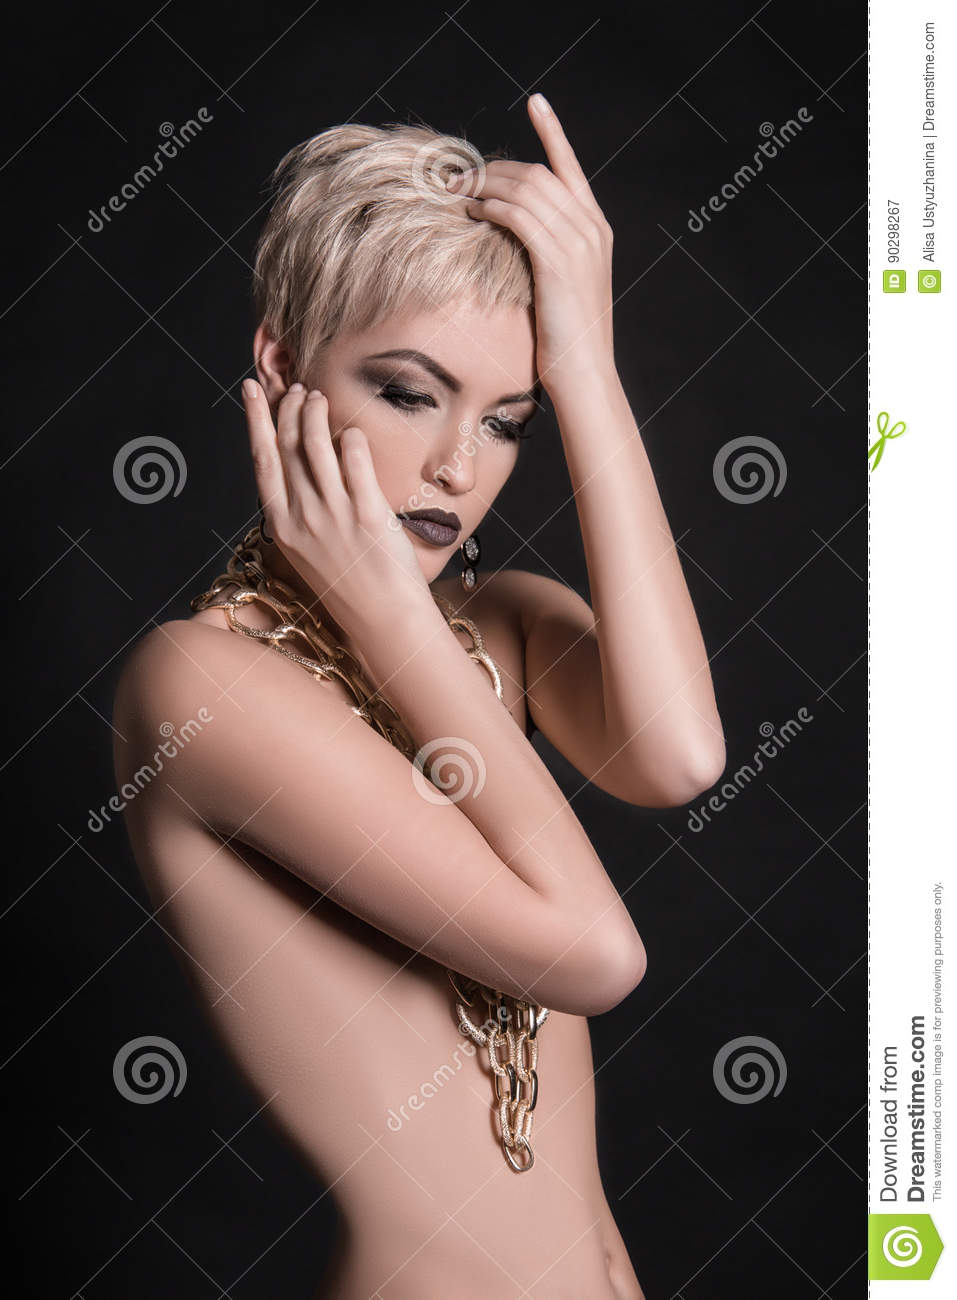 beautiful nude short hair woman stock image - image of head